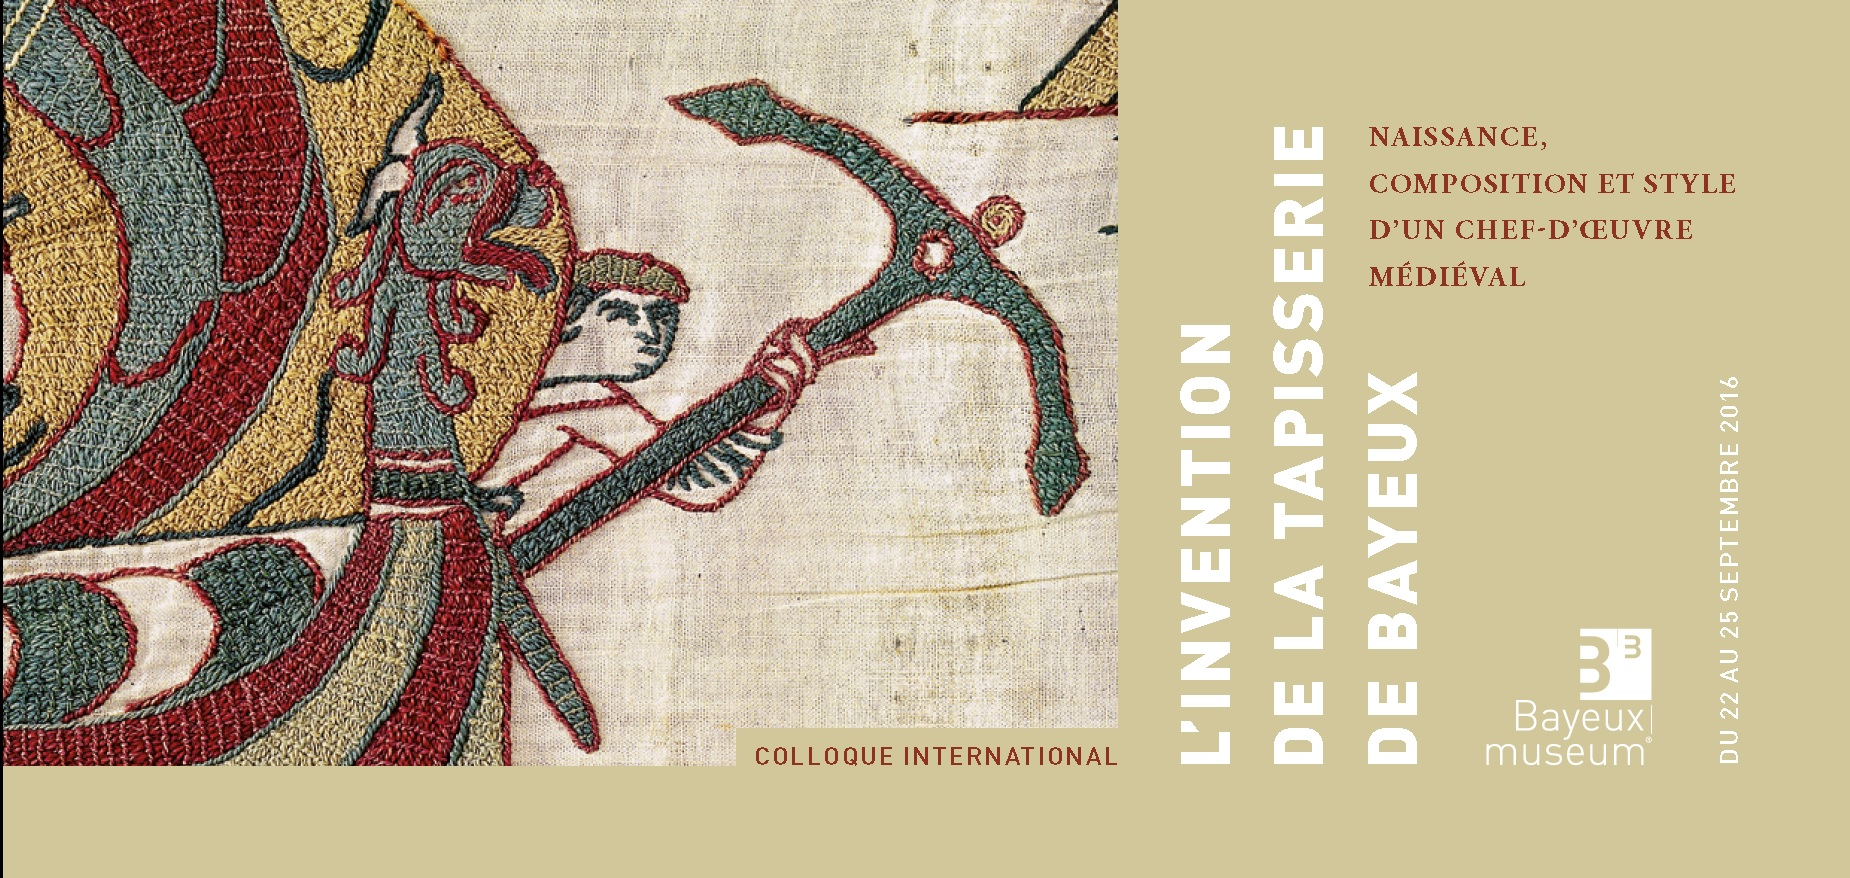 The invention of the Bayeux Tapestry: an International Colloquium at the Bayeux Museum